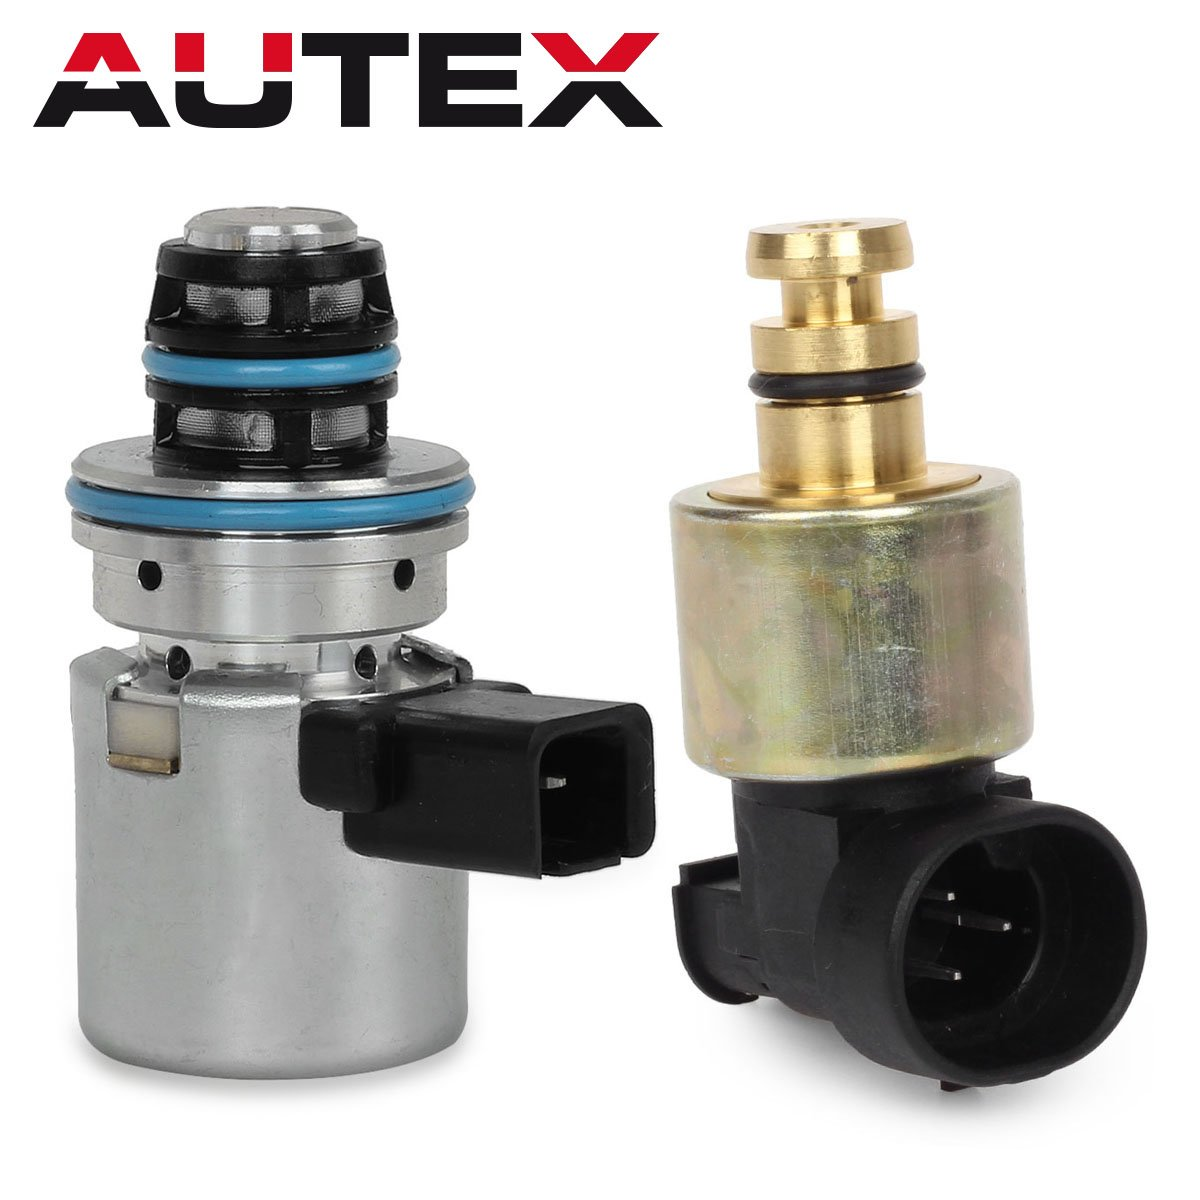 AUTEX Transmission Pressure Sensor Governor Solenoid Kit A500 A518 42RE 44RE 46RE 47RE for 96-99 Dodge Jeep by AUTEX